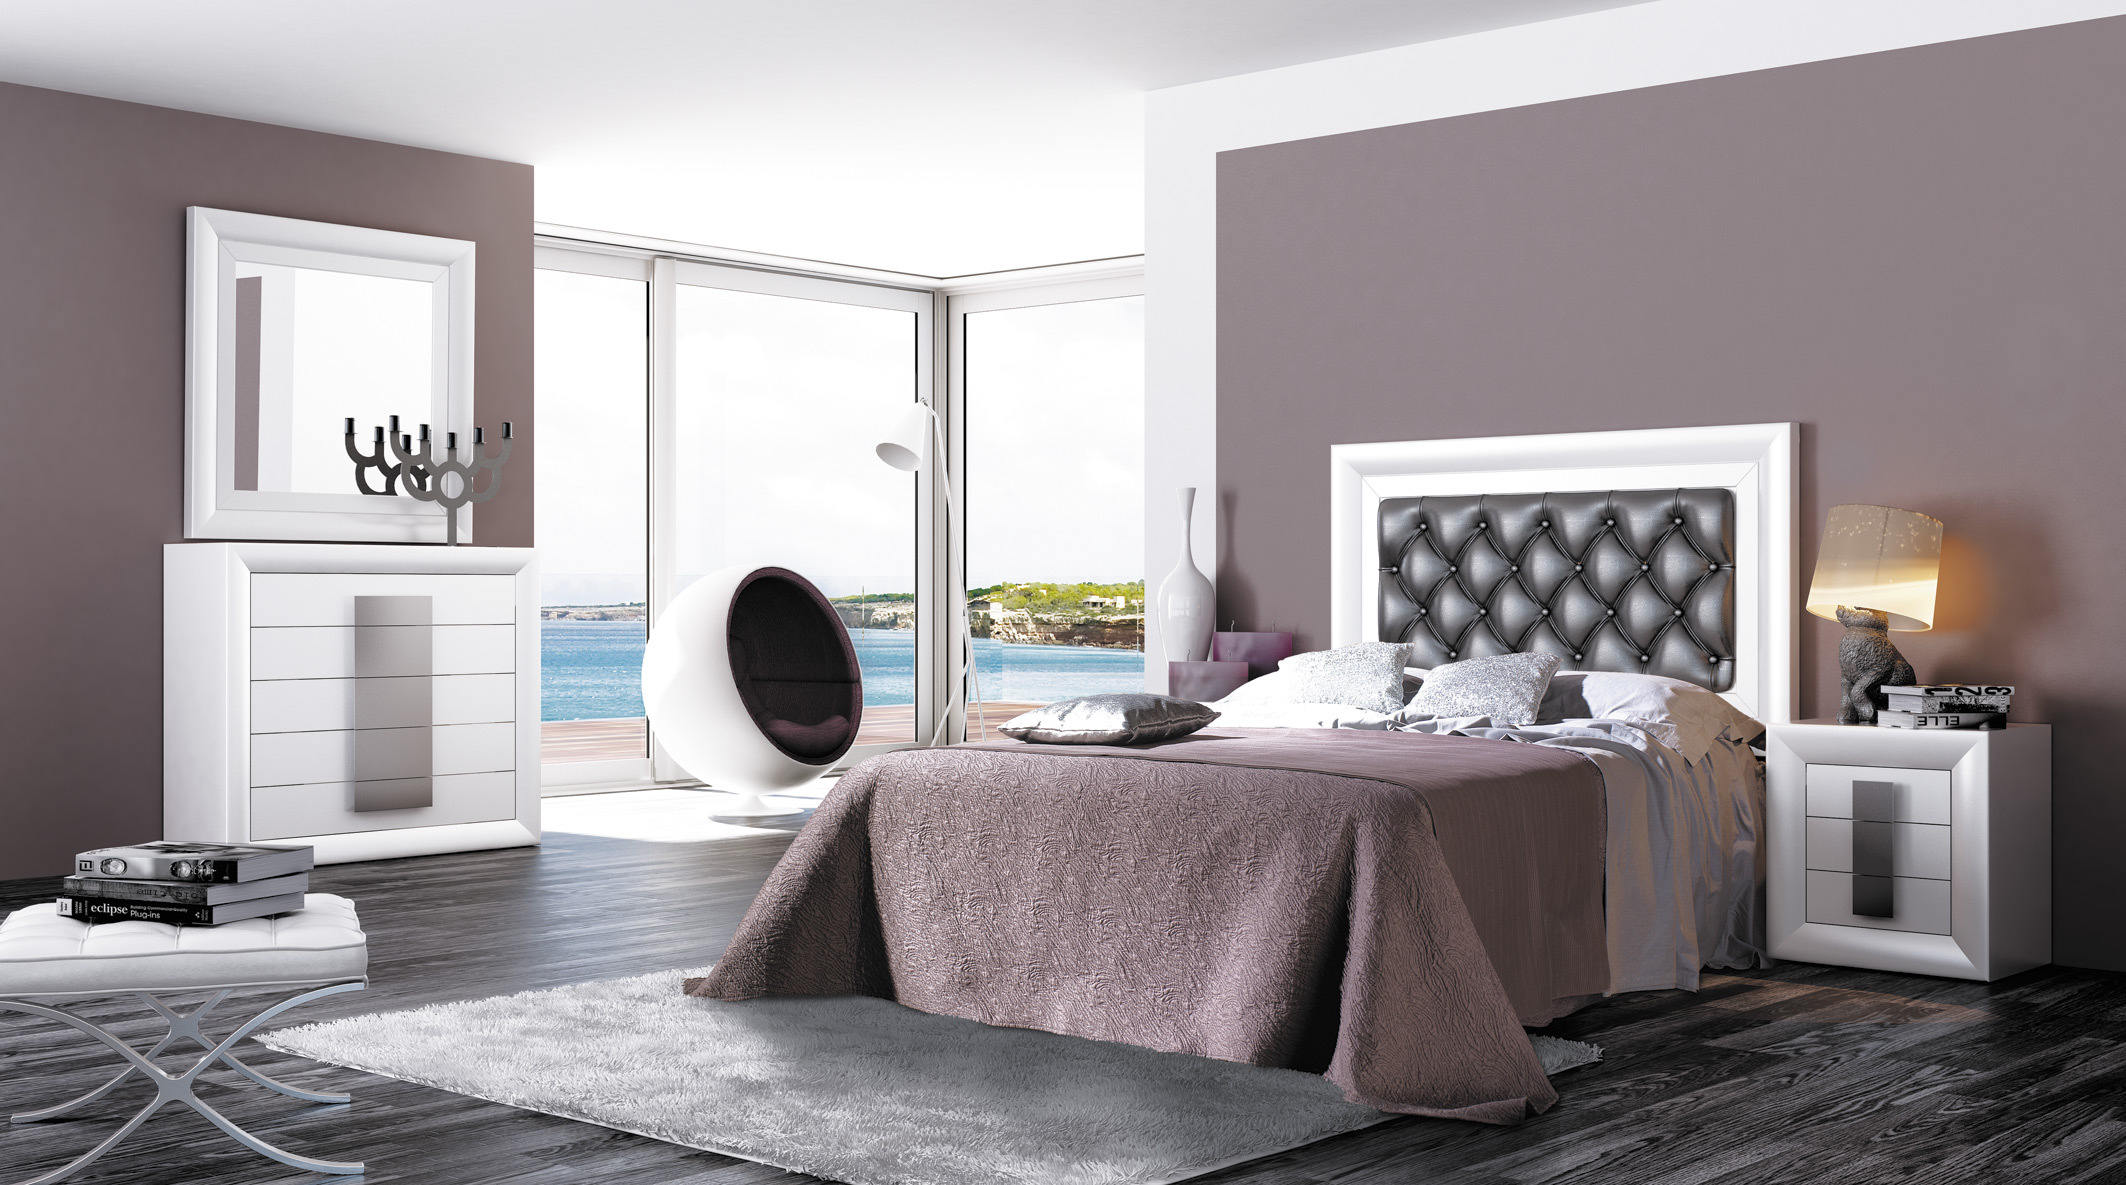 decoraci n de dormitorios de color plata. Black Bedroom Furniture Sets. Home Design Ideas